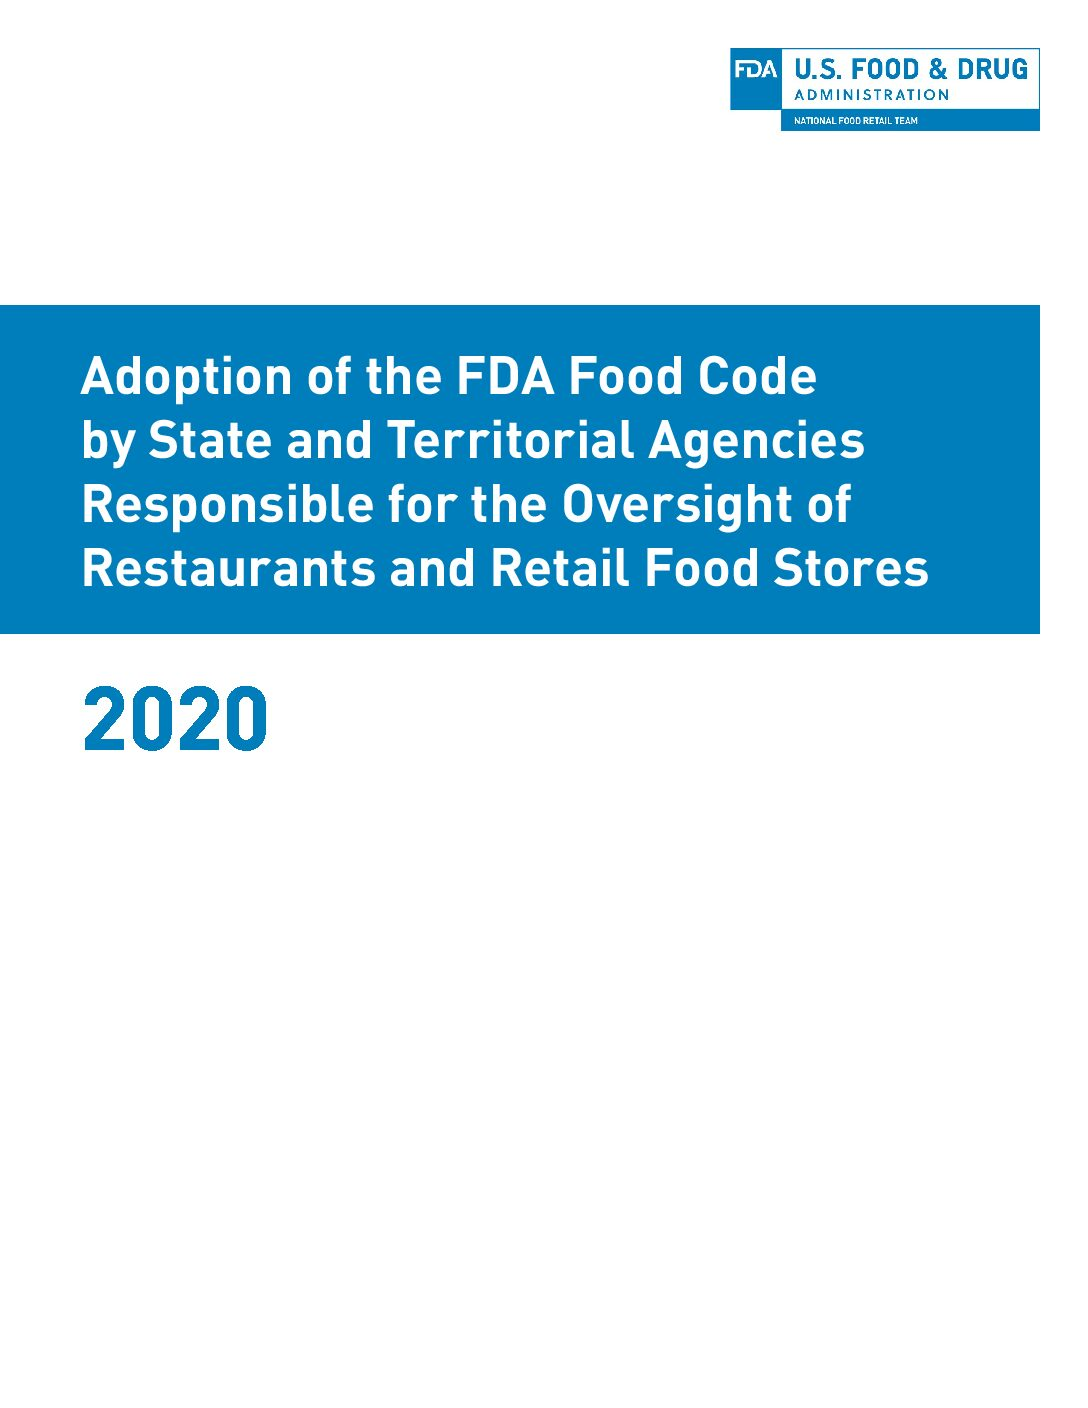 Image of front page of the 2019 Annual Food Code Adoption Report